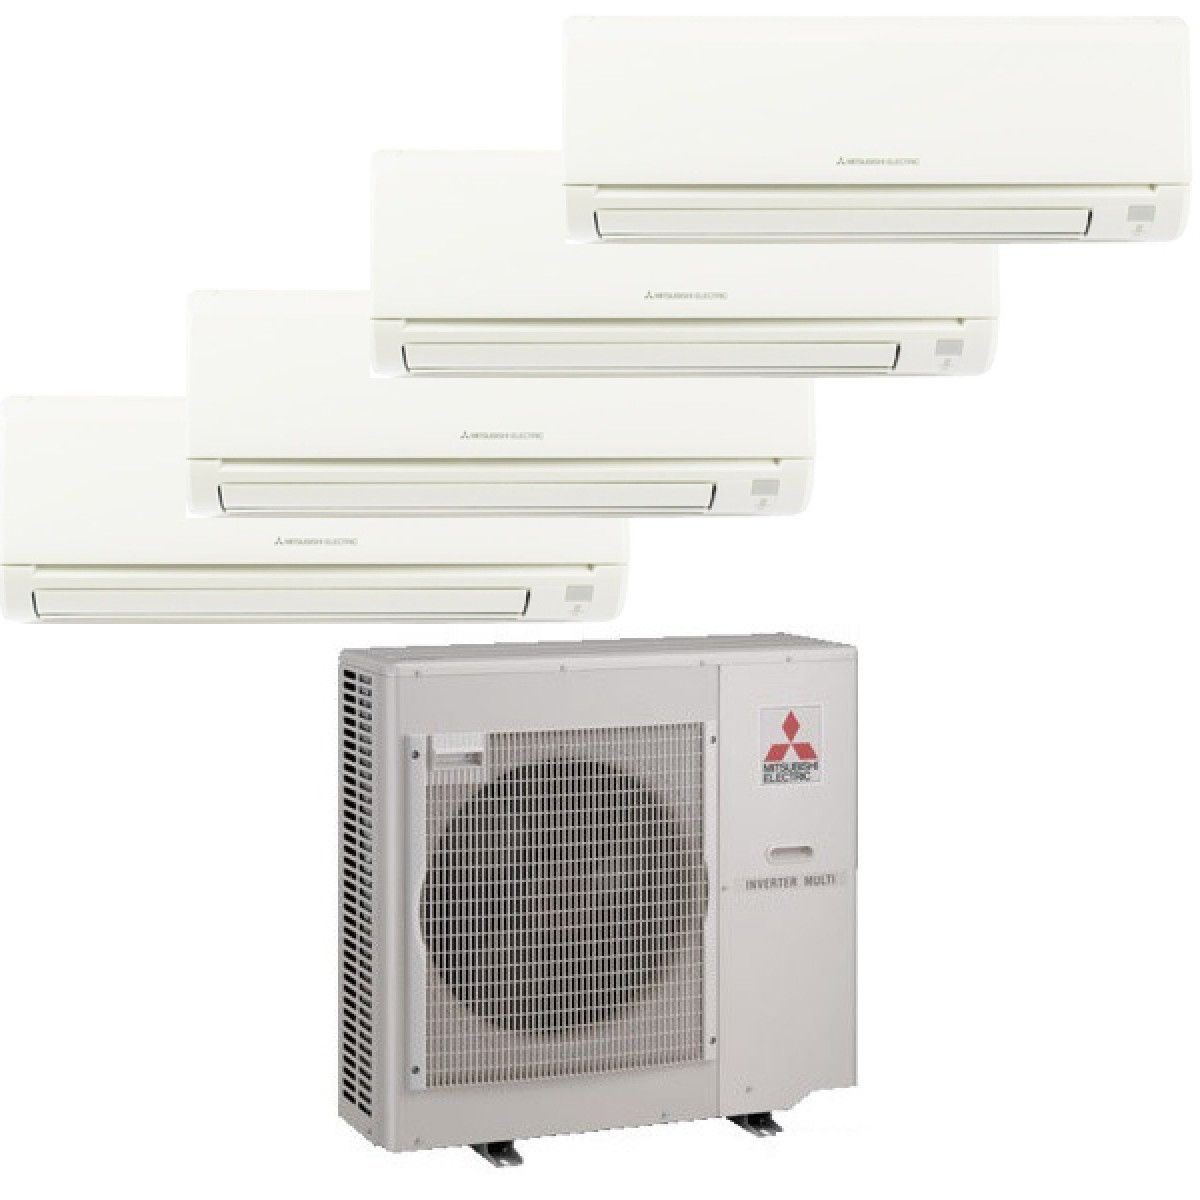 #8F3C45 Mitsubishi Mr Slim 4 Zone Heat Pump With (3) 9K Btu Indoor  Brand New 1451 Best Indoor Ac Unit images with 1200x1200 px on helpvideos.info - Air Conditioners, Air Coolers and more